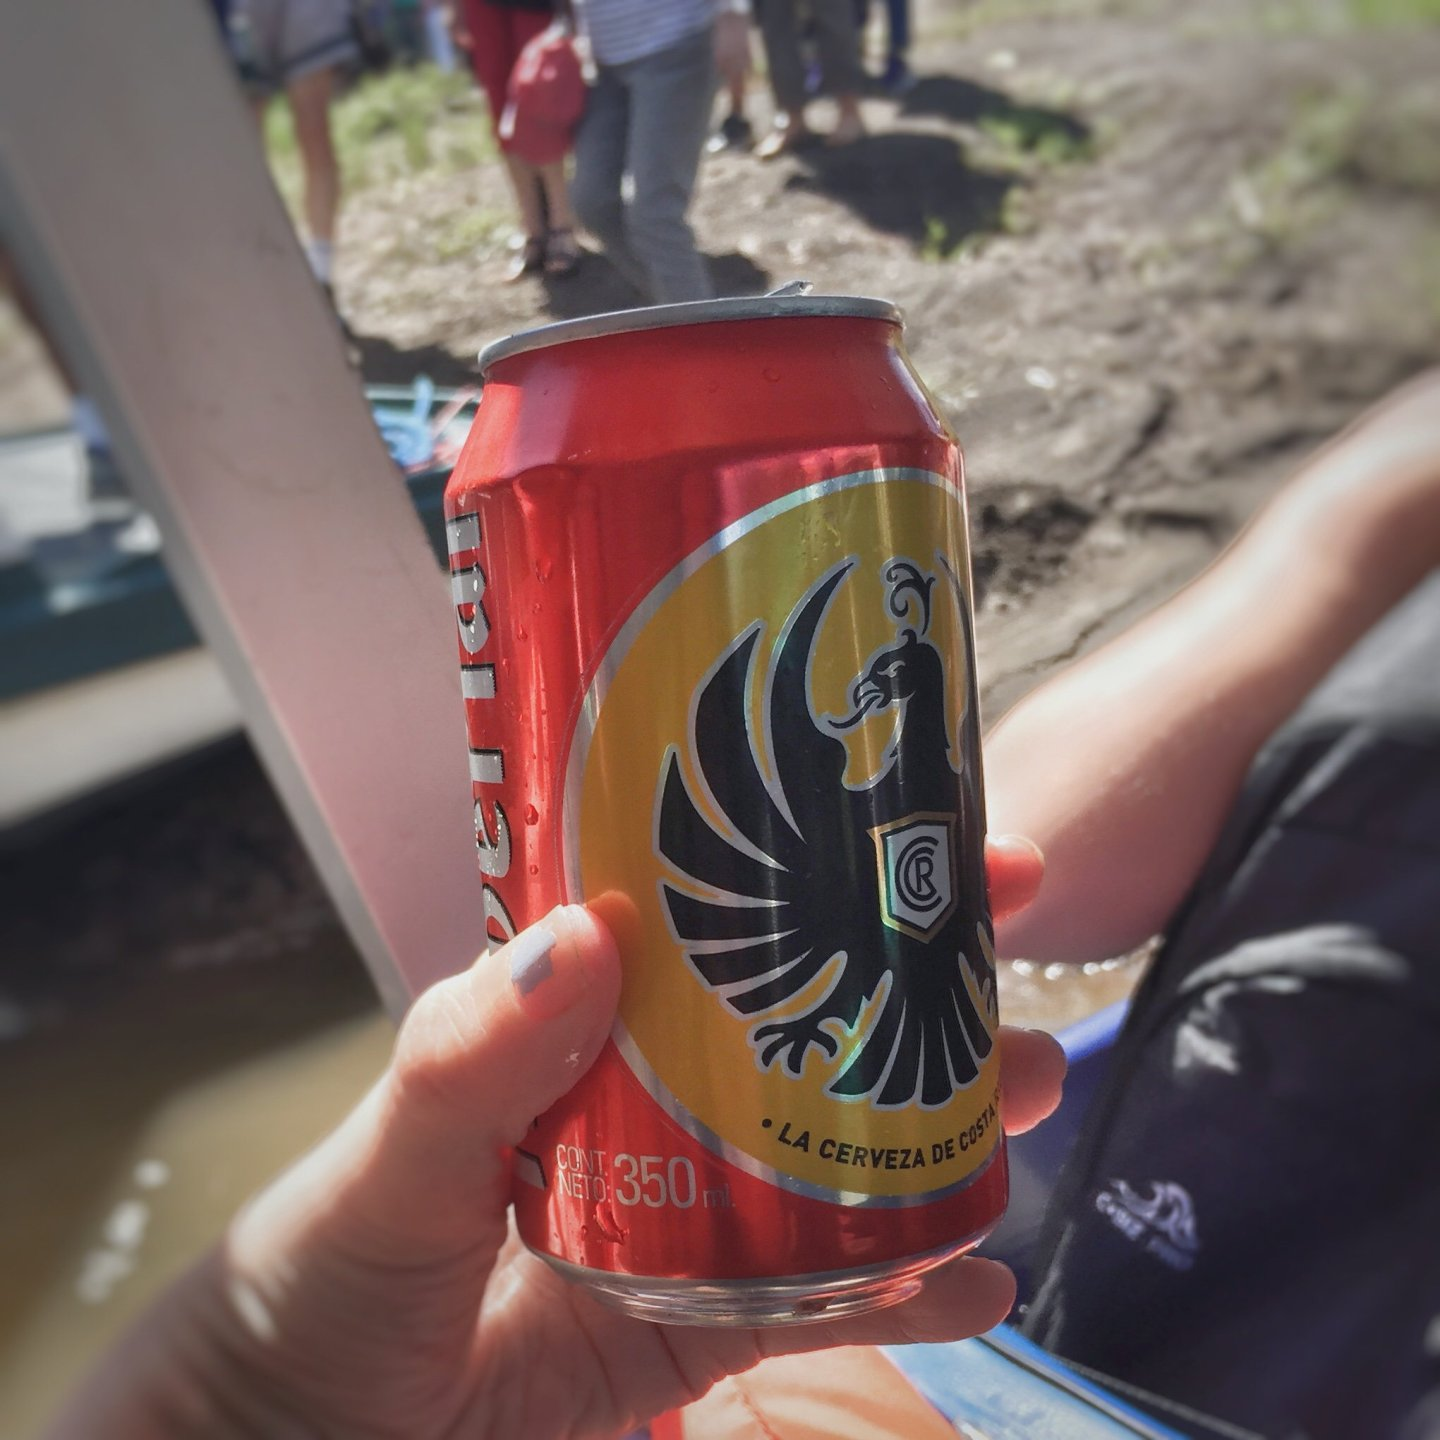 A sneaky can of the local beer Imperial on our boat trip to Tortuguero